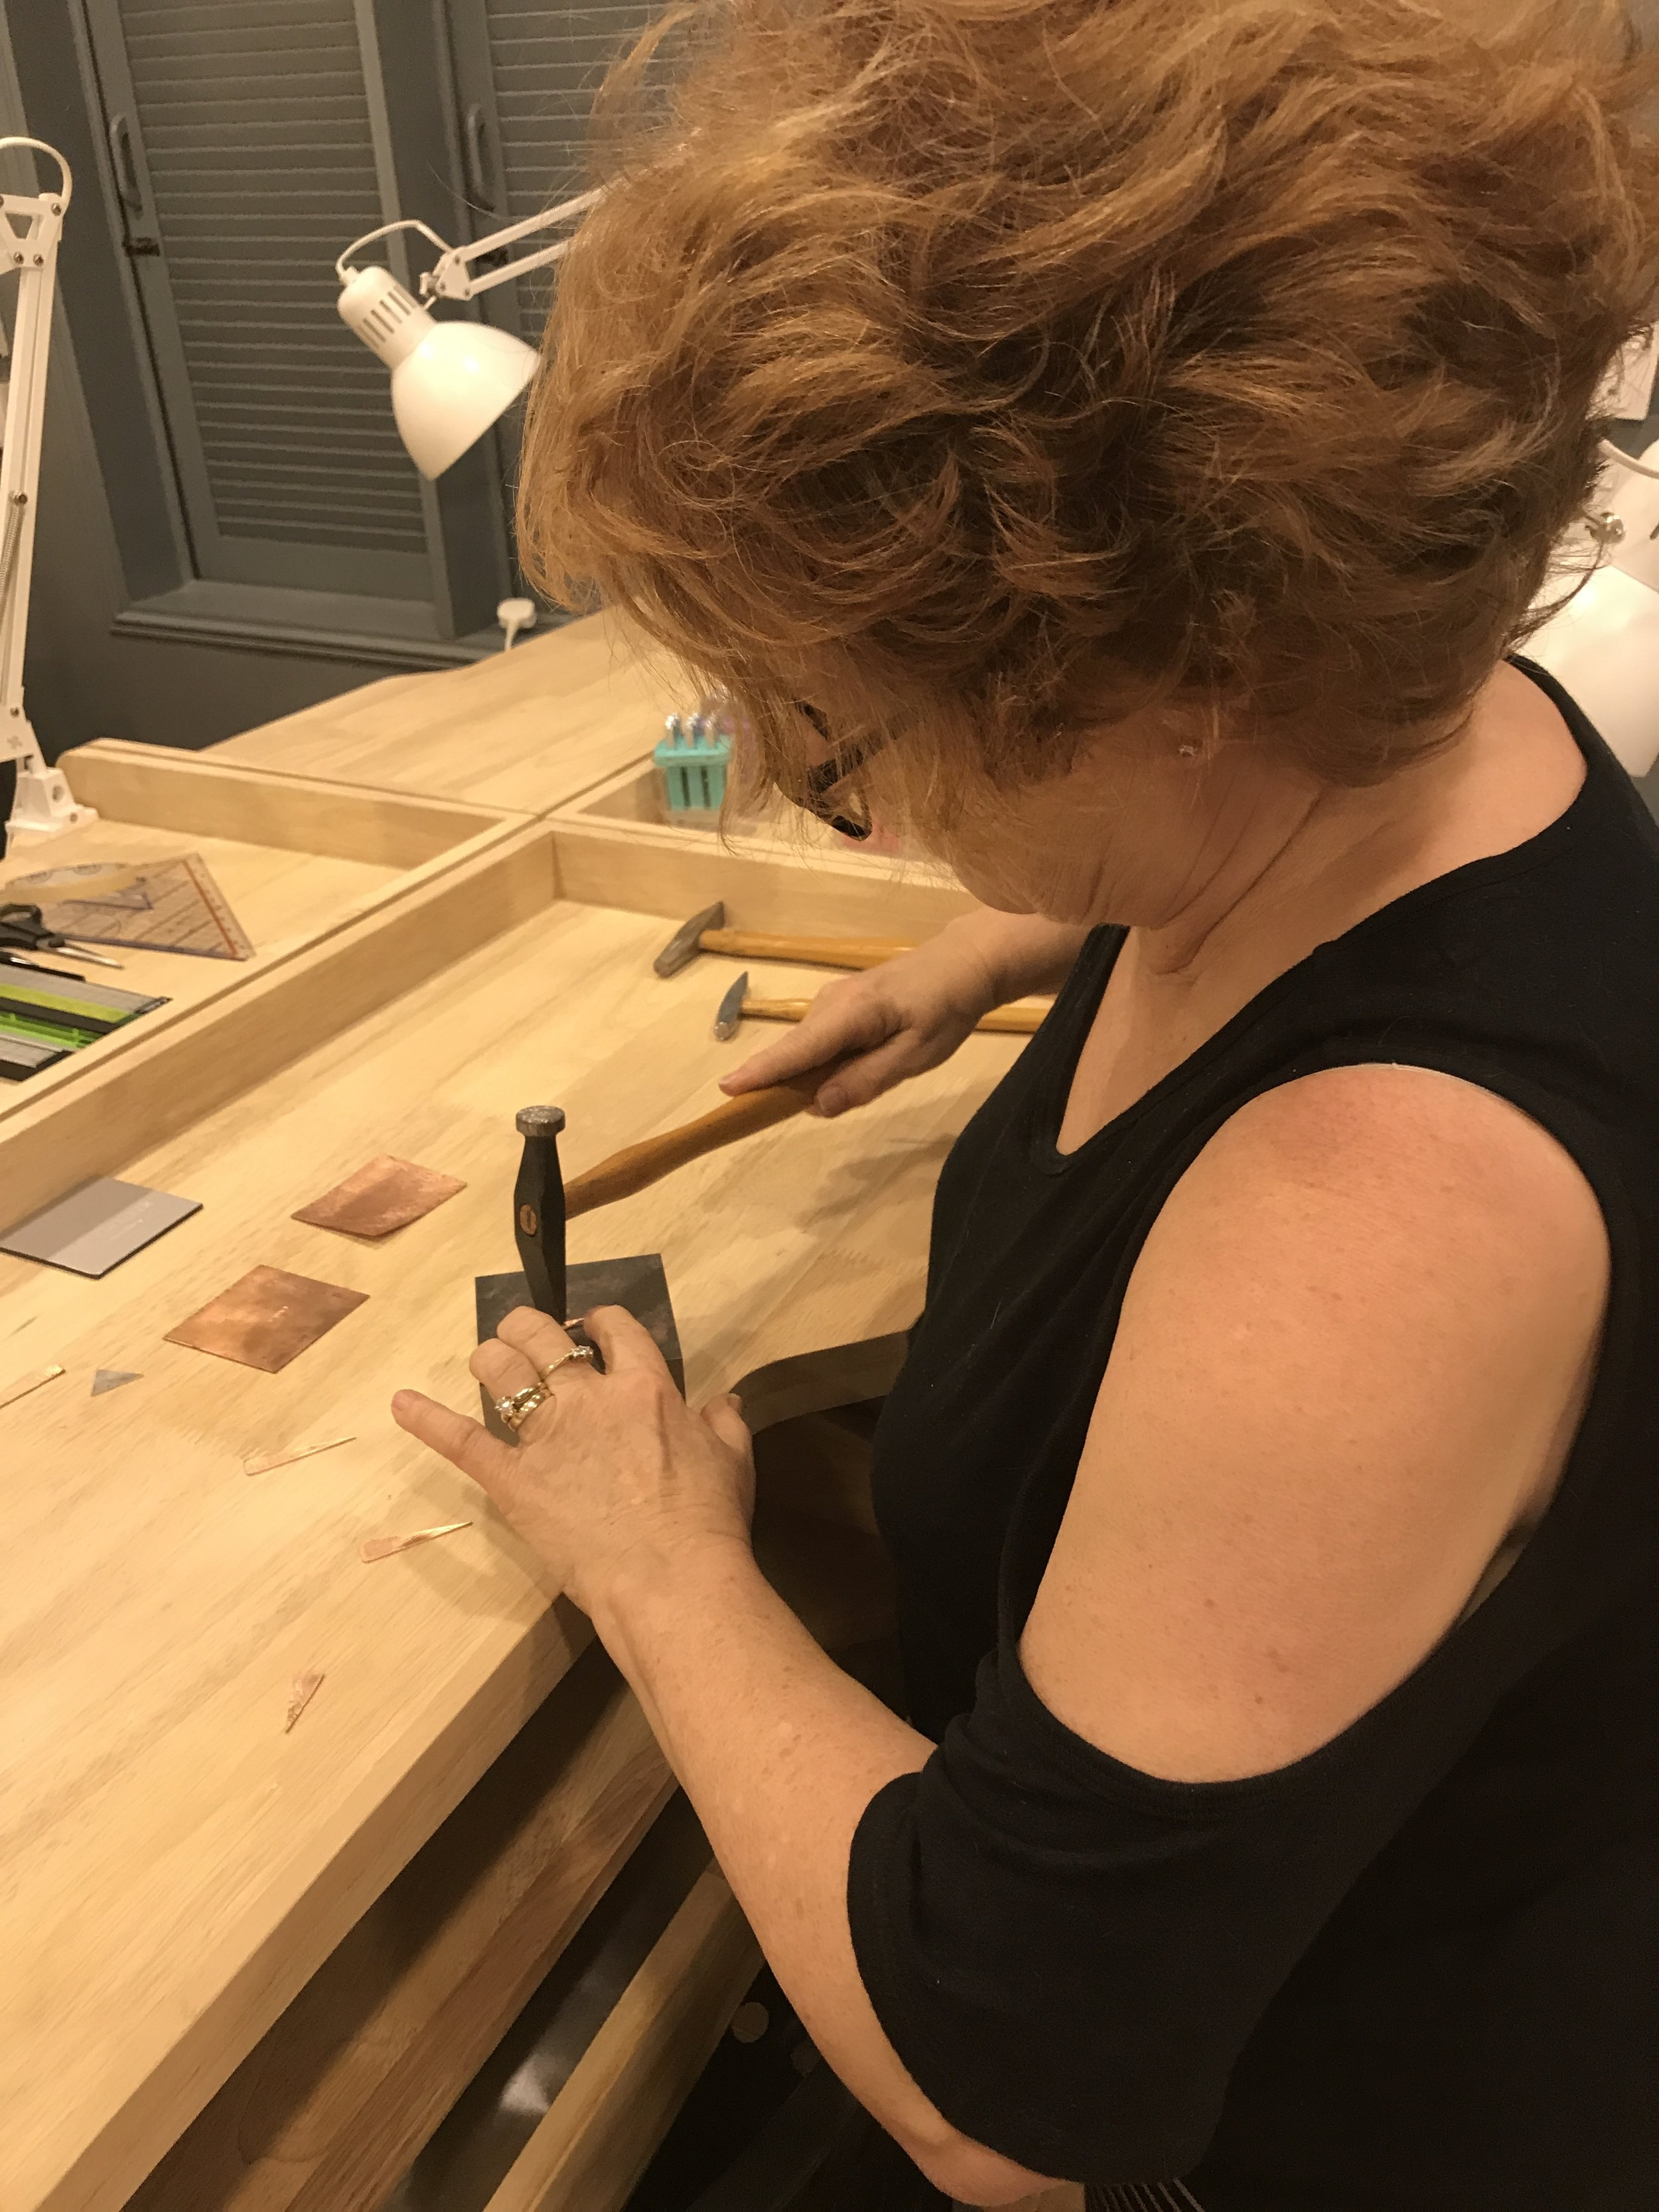 - The talented Dagmar hard at work!